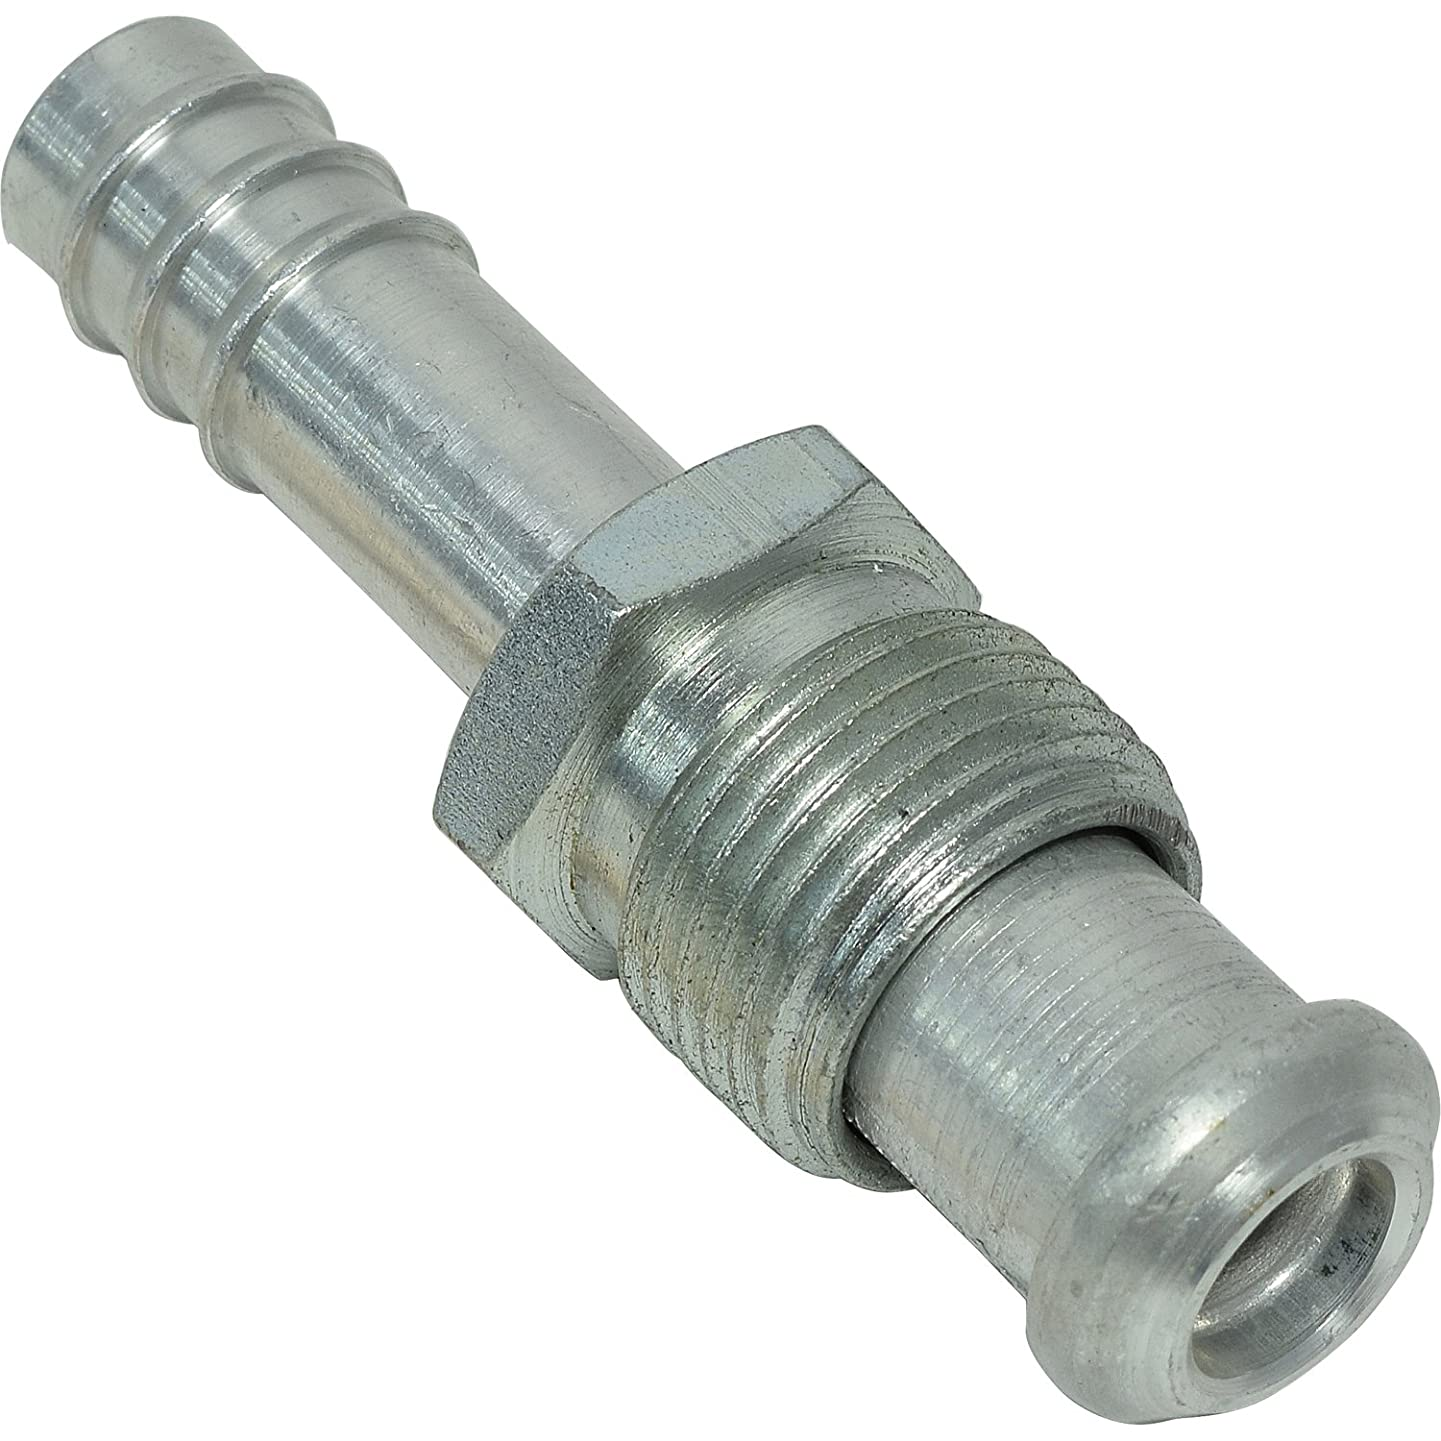 Universal Air Conditioner FT 1203C A/C Refrigerant Hose Fitting